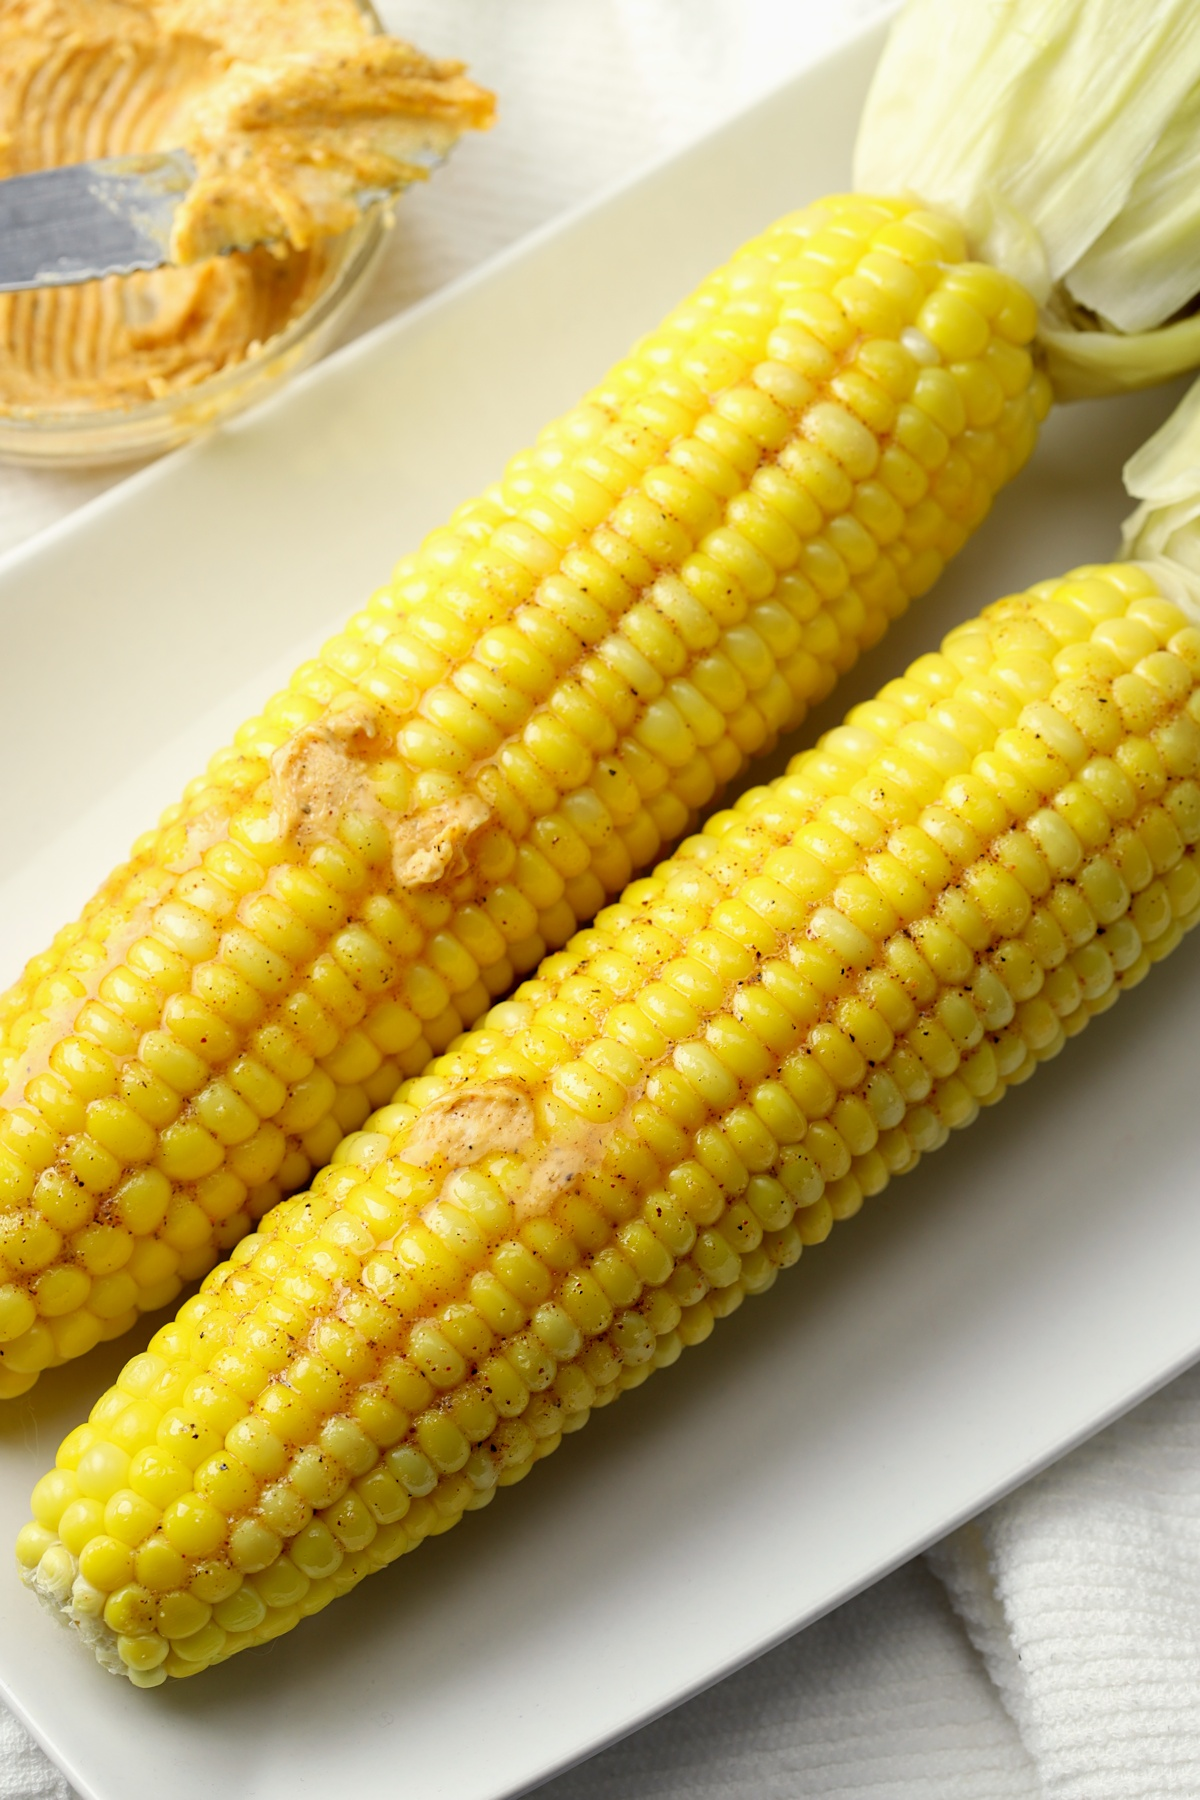 Two corn cobs on a white plate.